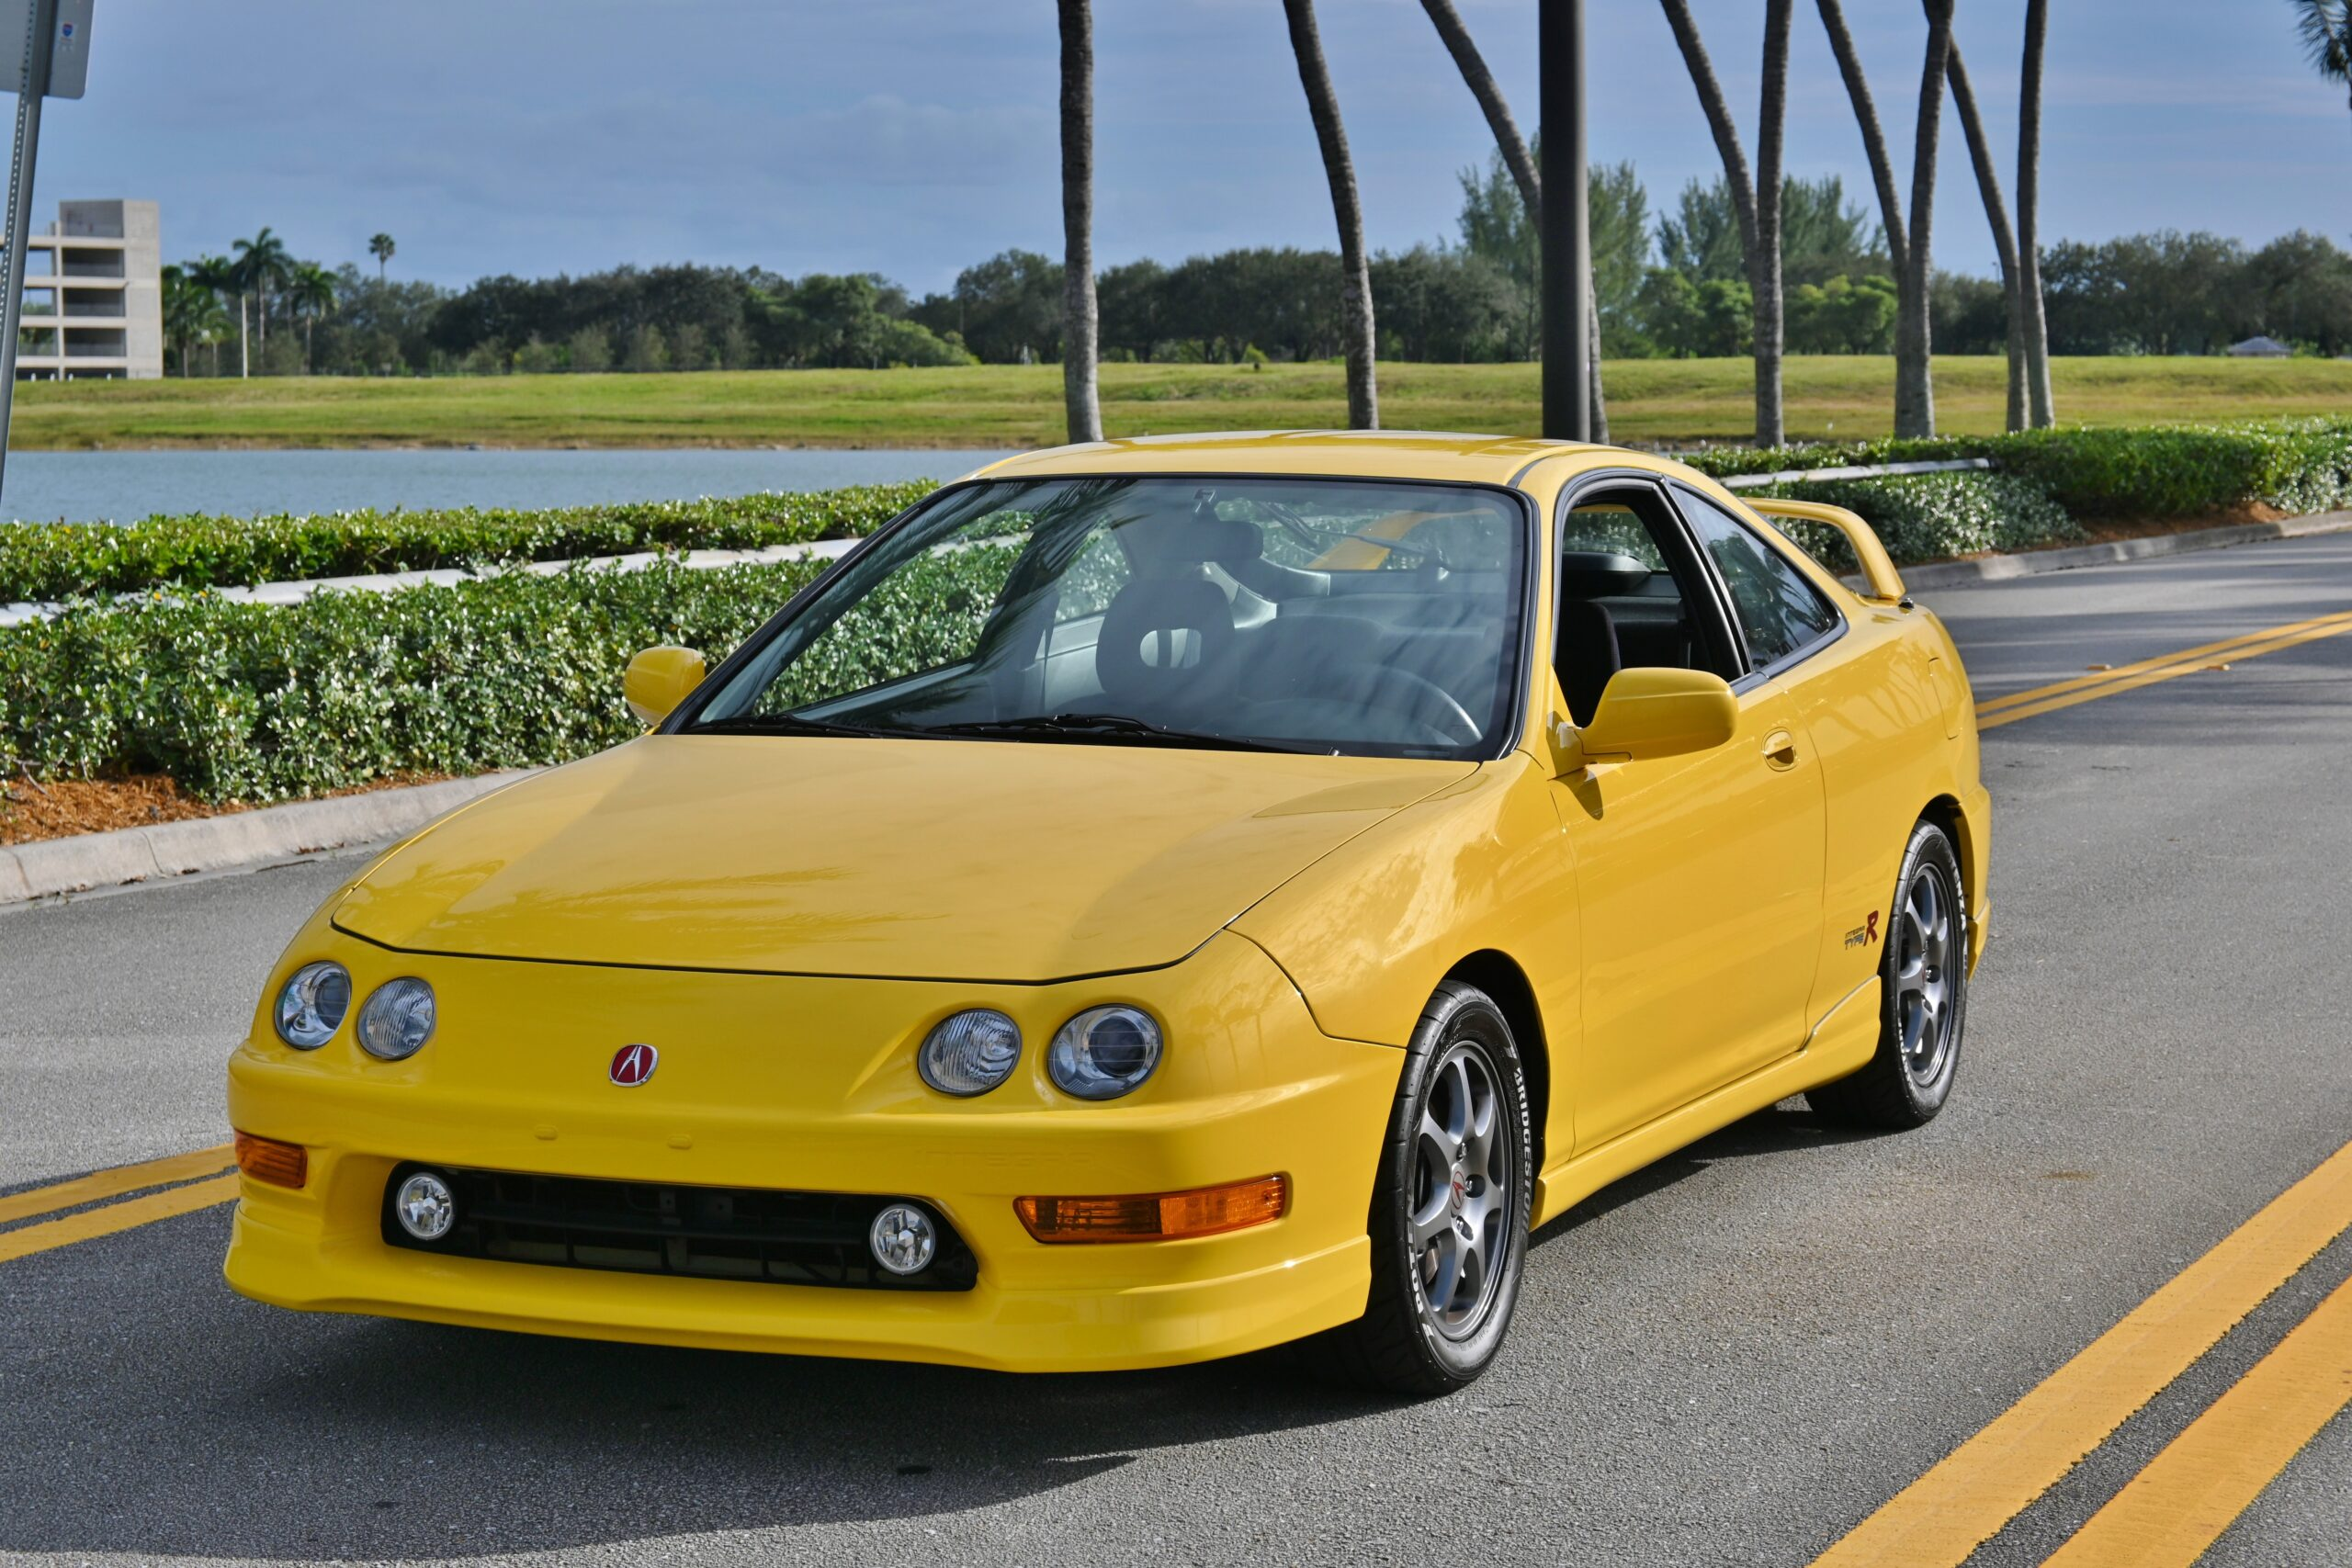 2001 Acura Integra Type R Rare Phoenix Yellow / Original Paint / 100 % Stock/ 87k Original Miles /Like NEW